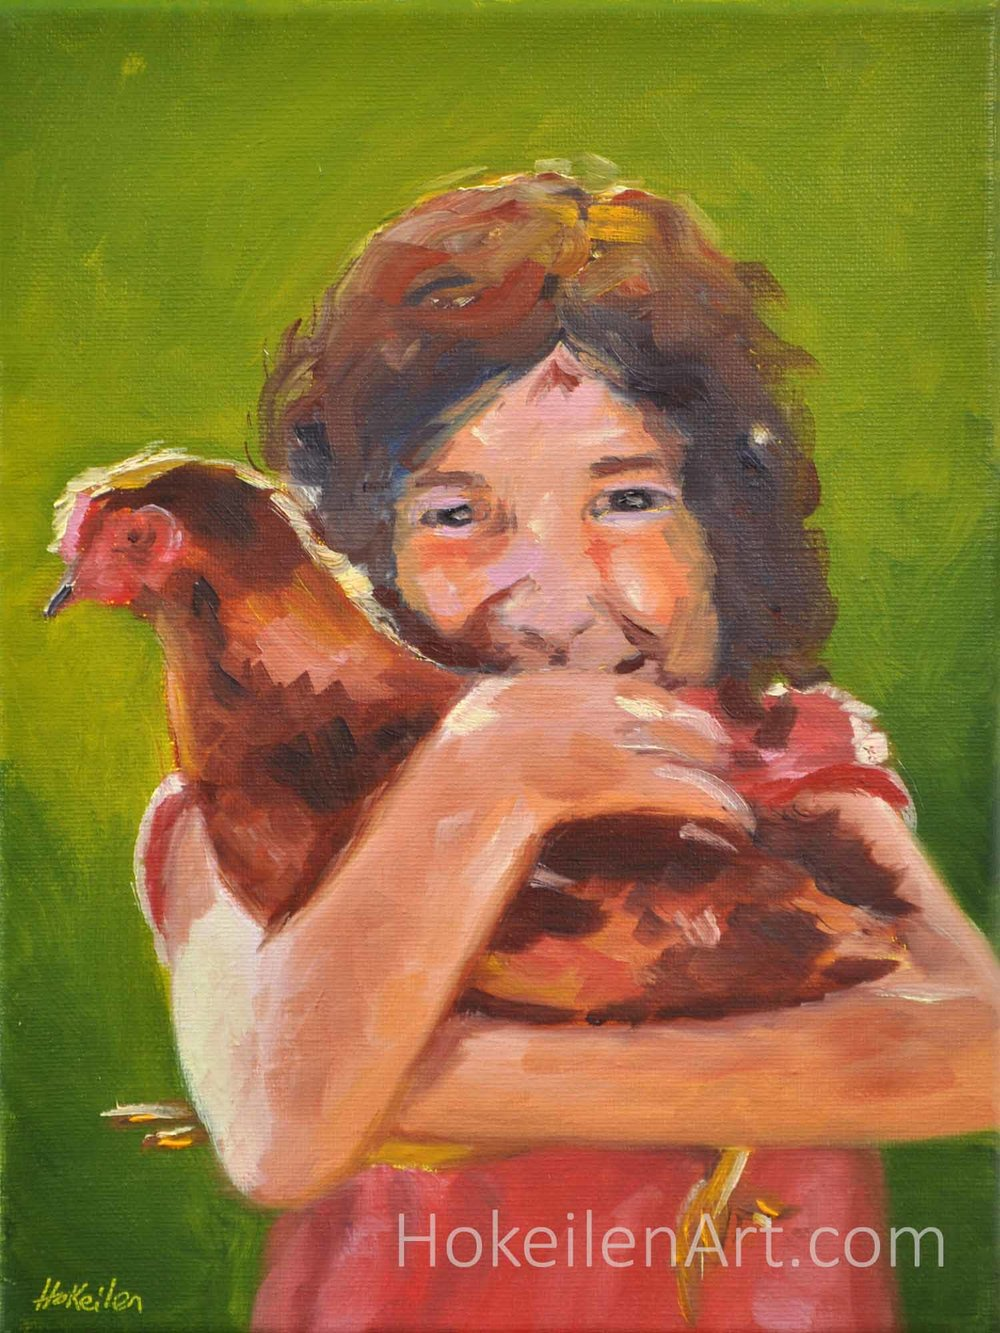 Becoming Vegetarian - oil on canvas, 12